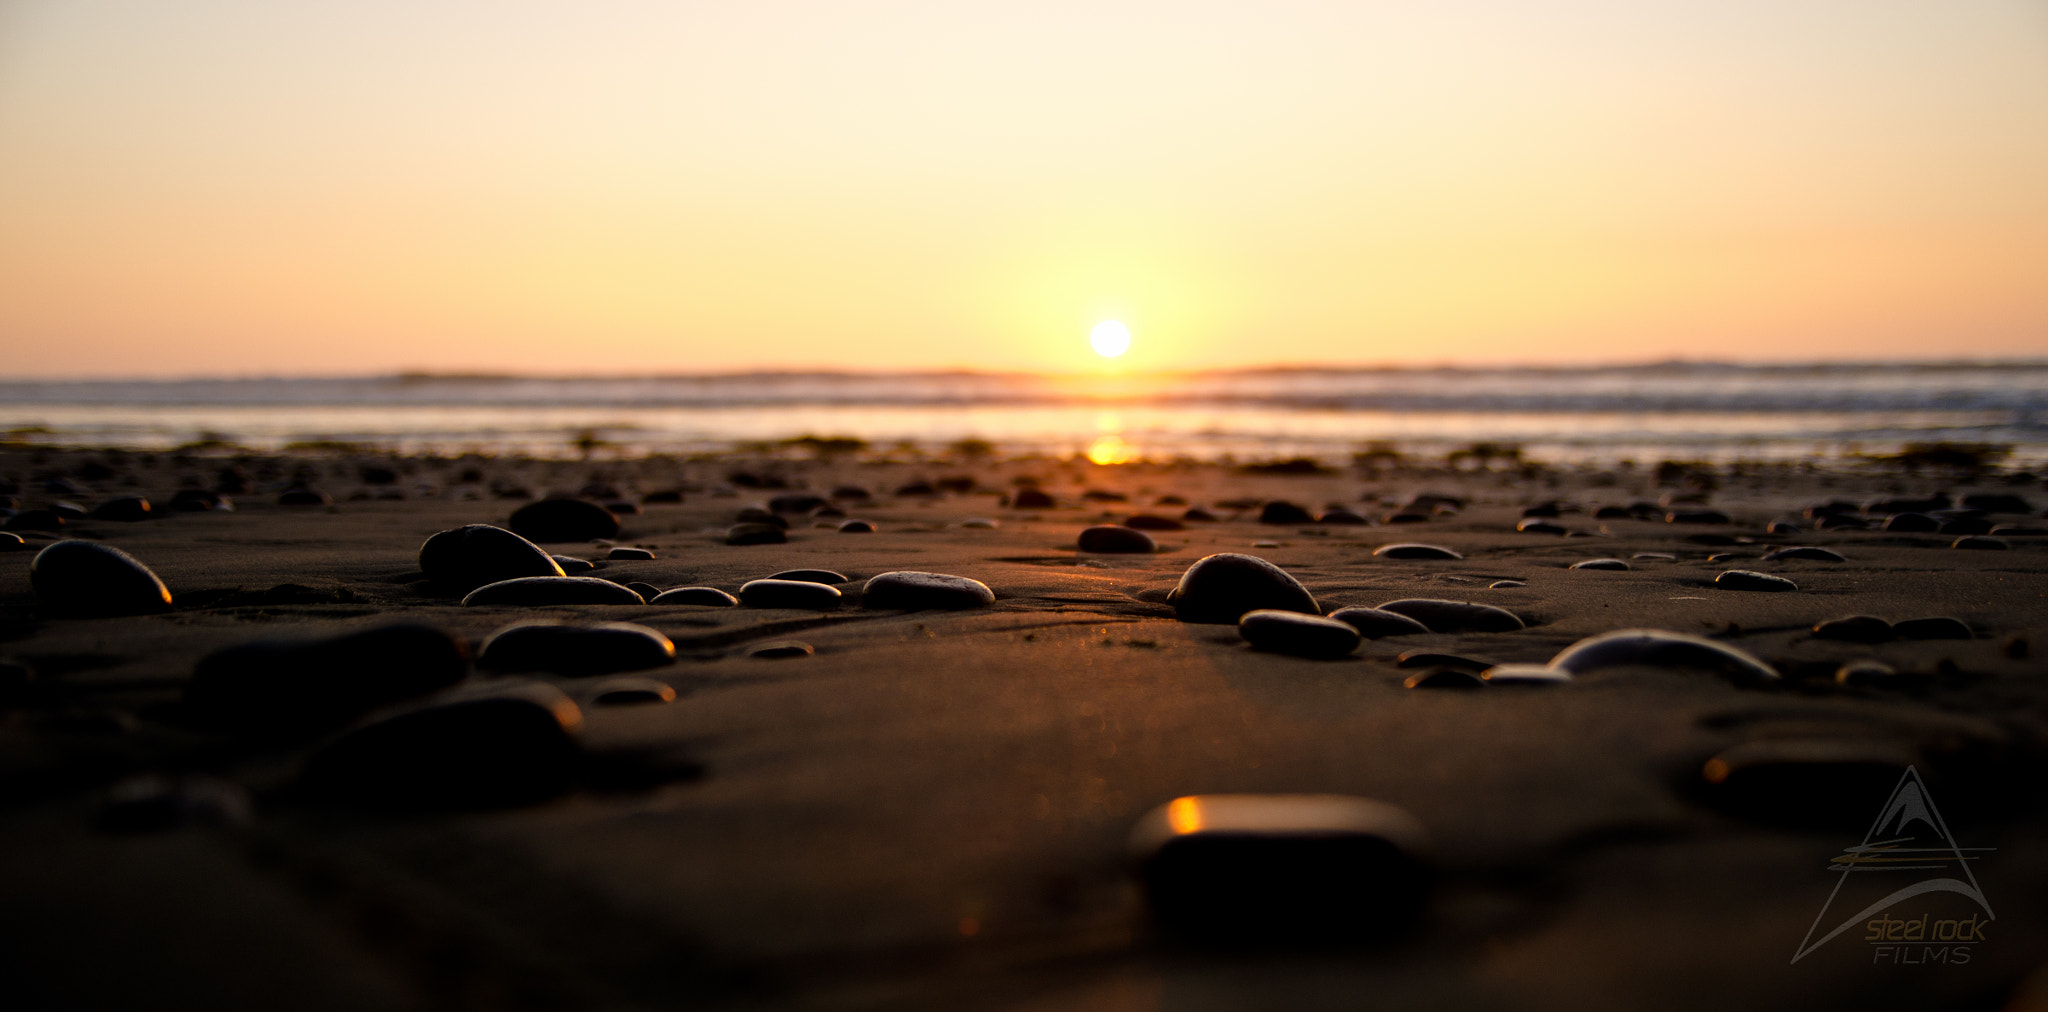 Photograph Beach Stones by Brandon Lied on 500px